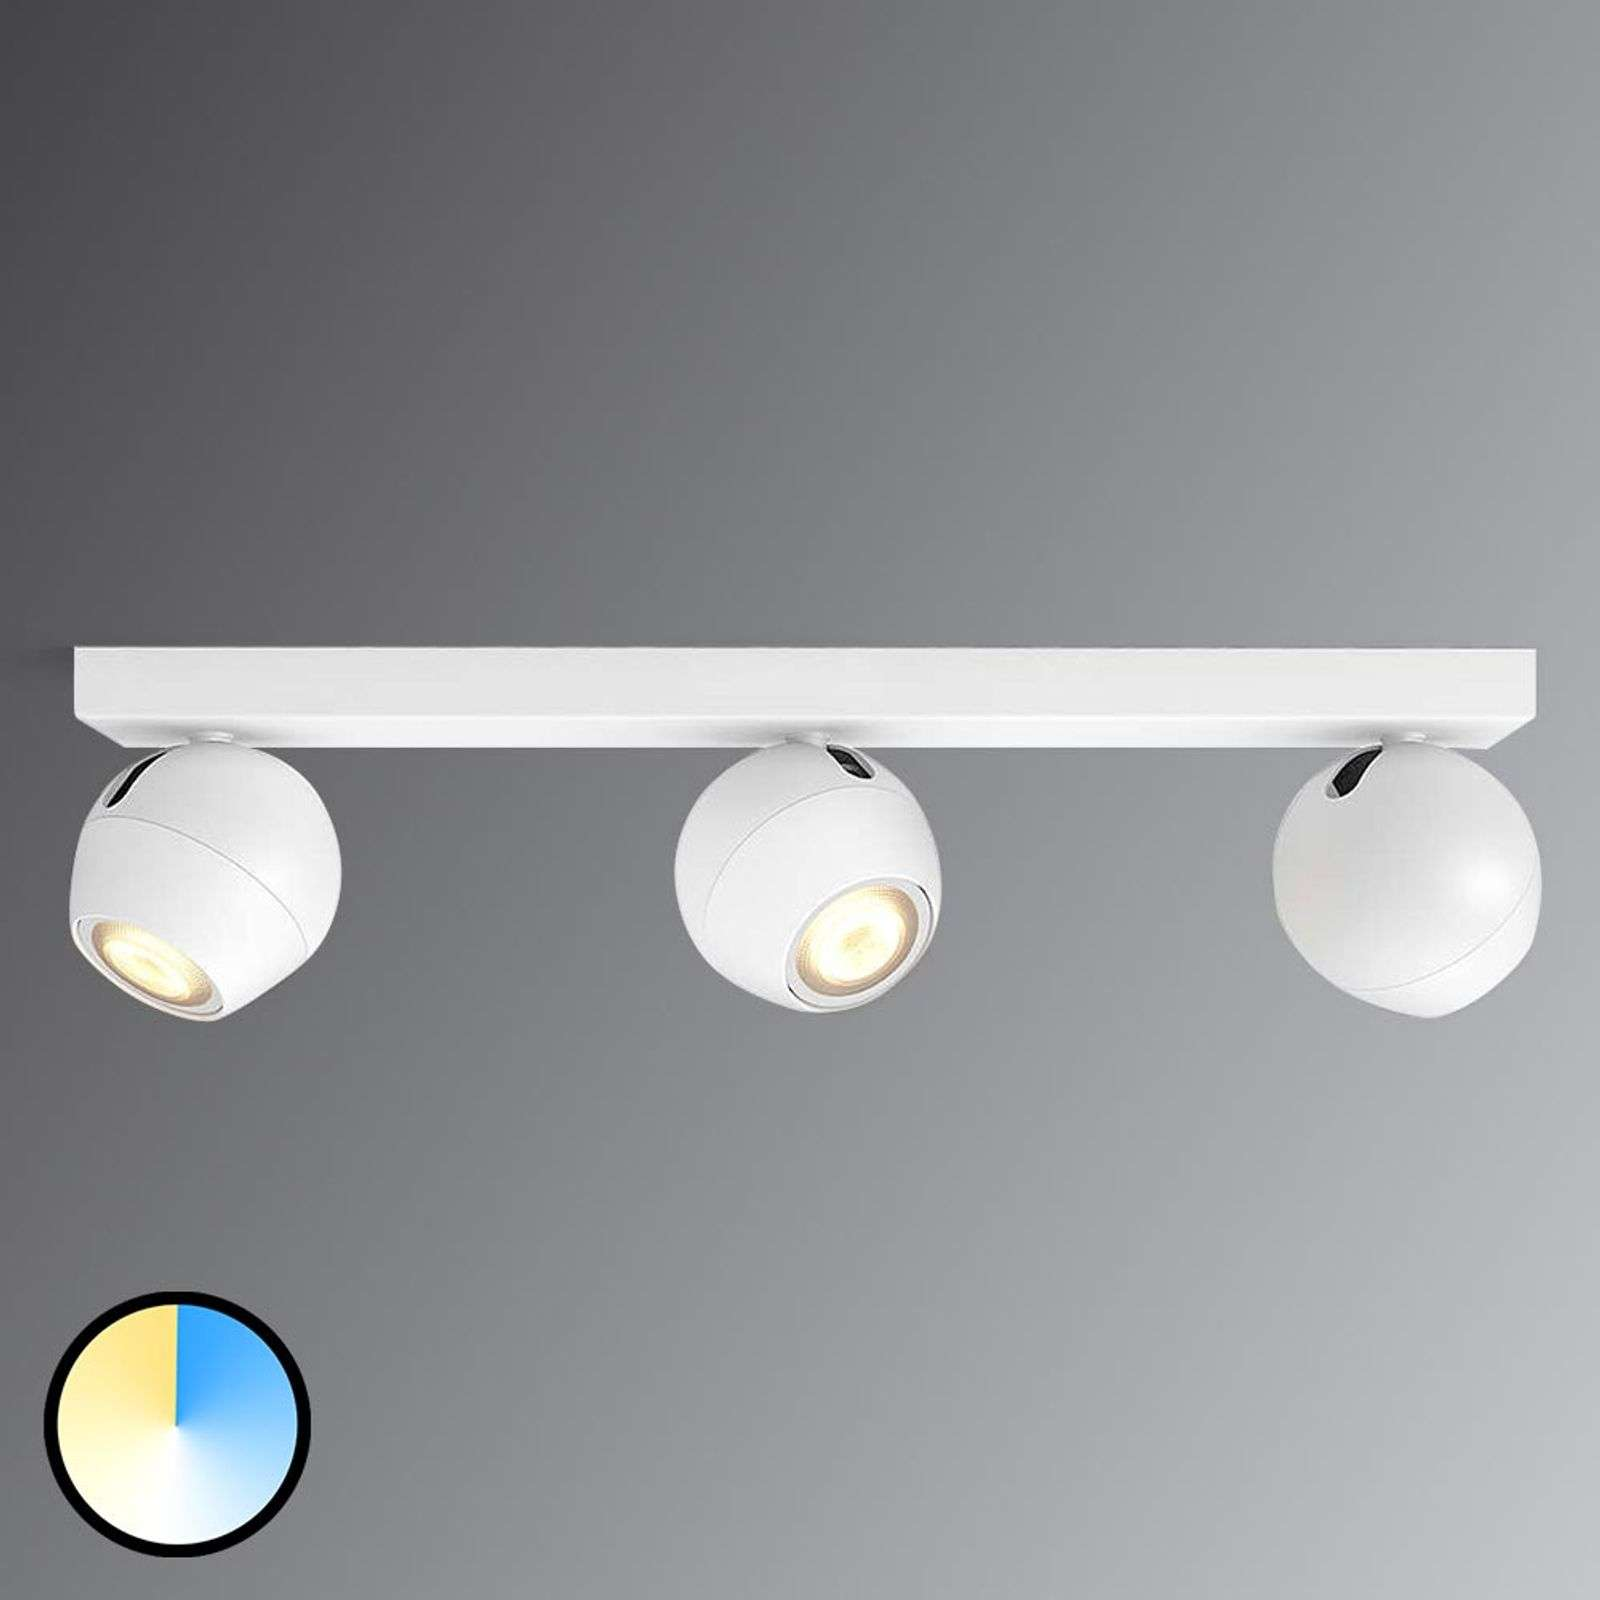 Buckram -.Philips Hue LED spot wit met 3 lampen